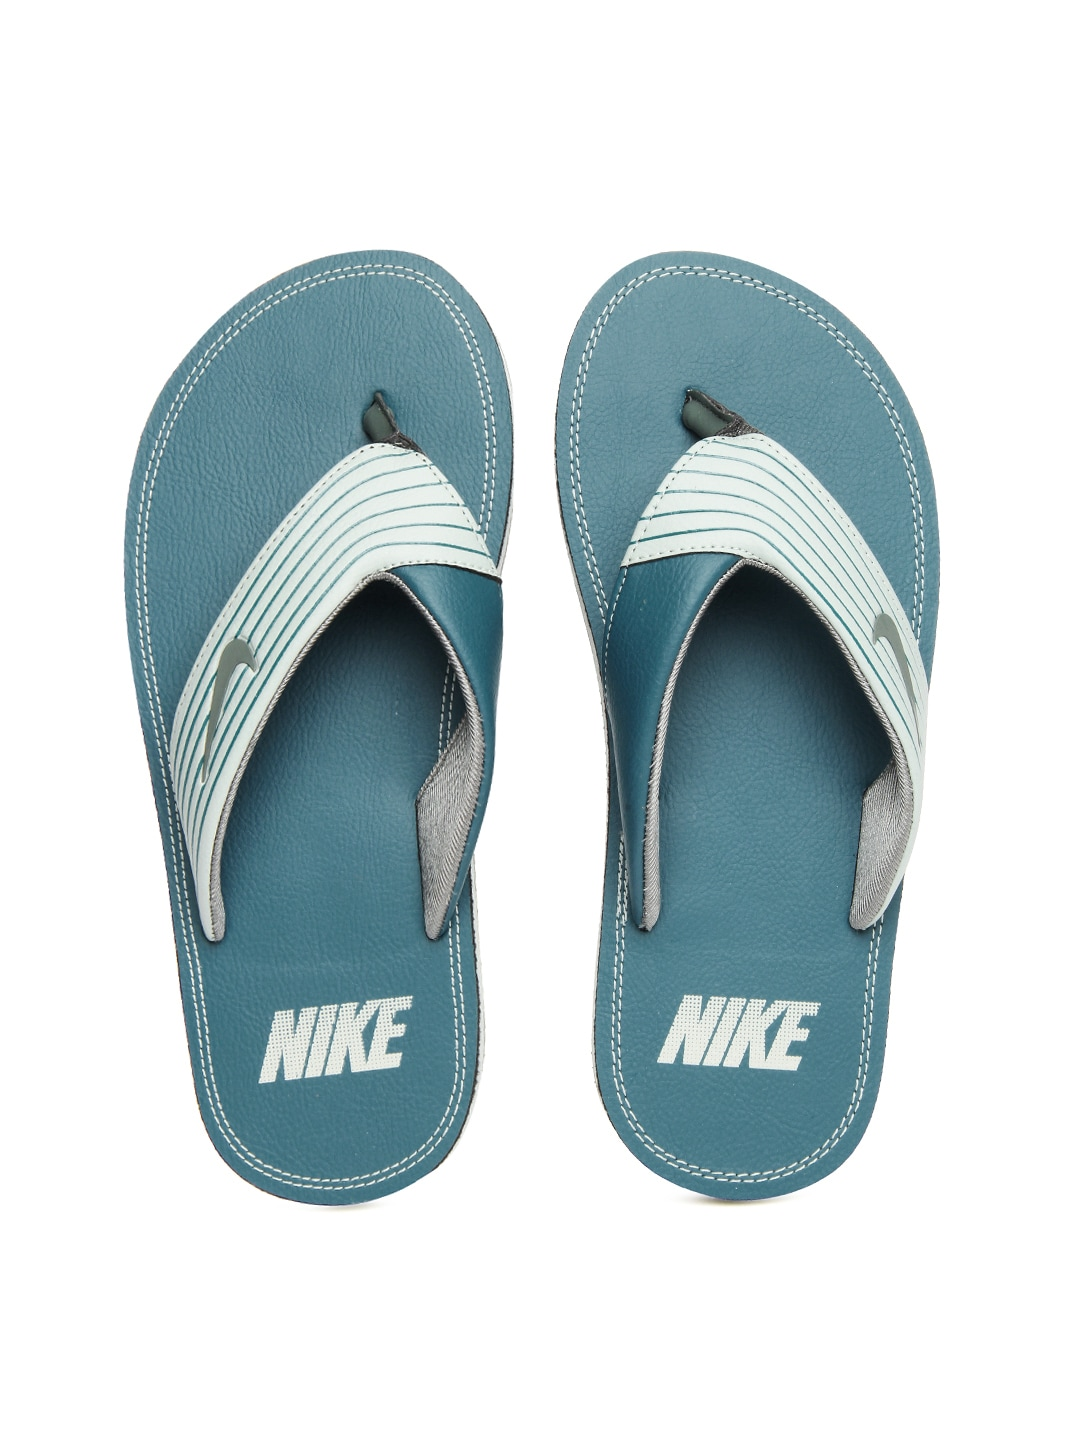 outlet store 141a9 95813 Nike 636165-300 Men Teal Green Chroma Thong Iii Flip Flops